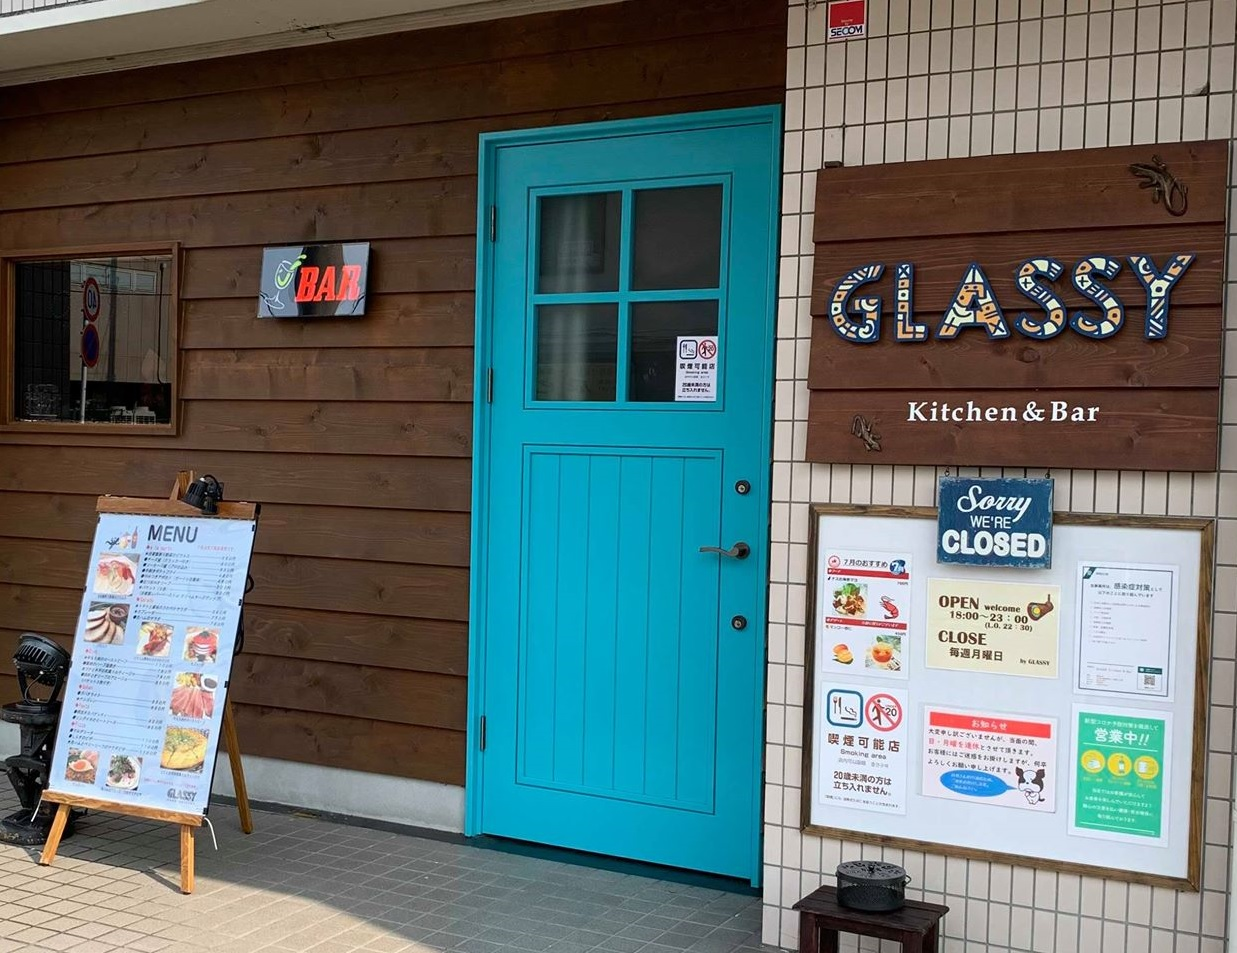 GLASSY Kitchen & Bar